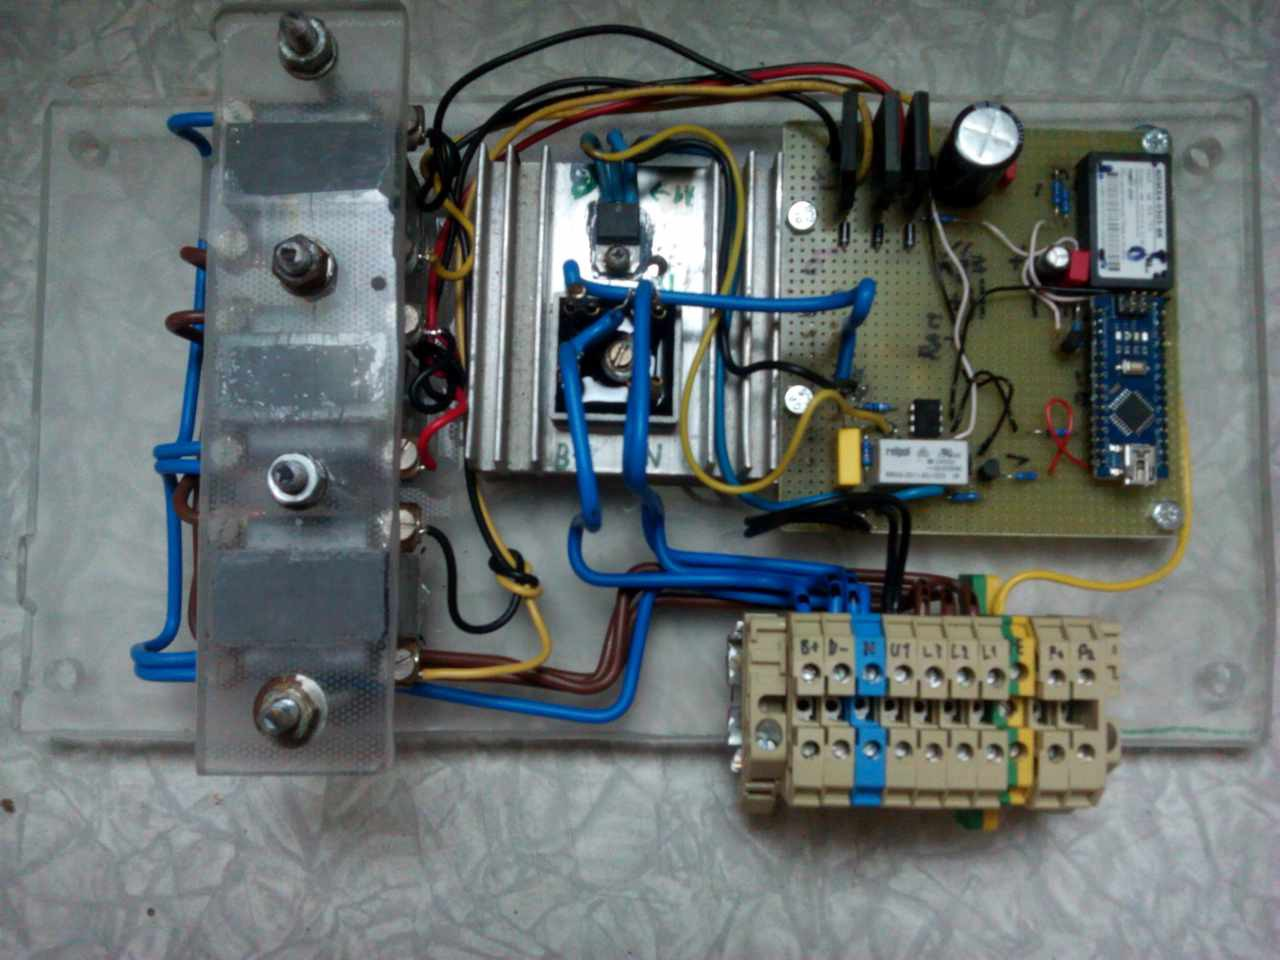 Automatic Voltage Regulator For Ac Alternator Avr Circuit Homemade Projects Relay Is Now Switched Off By Software Will Update Schematic After Finished